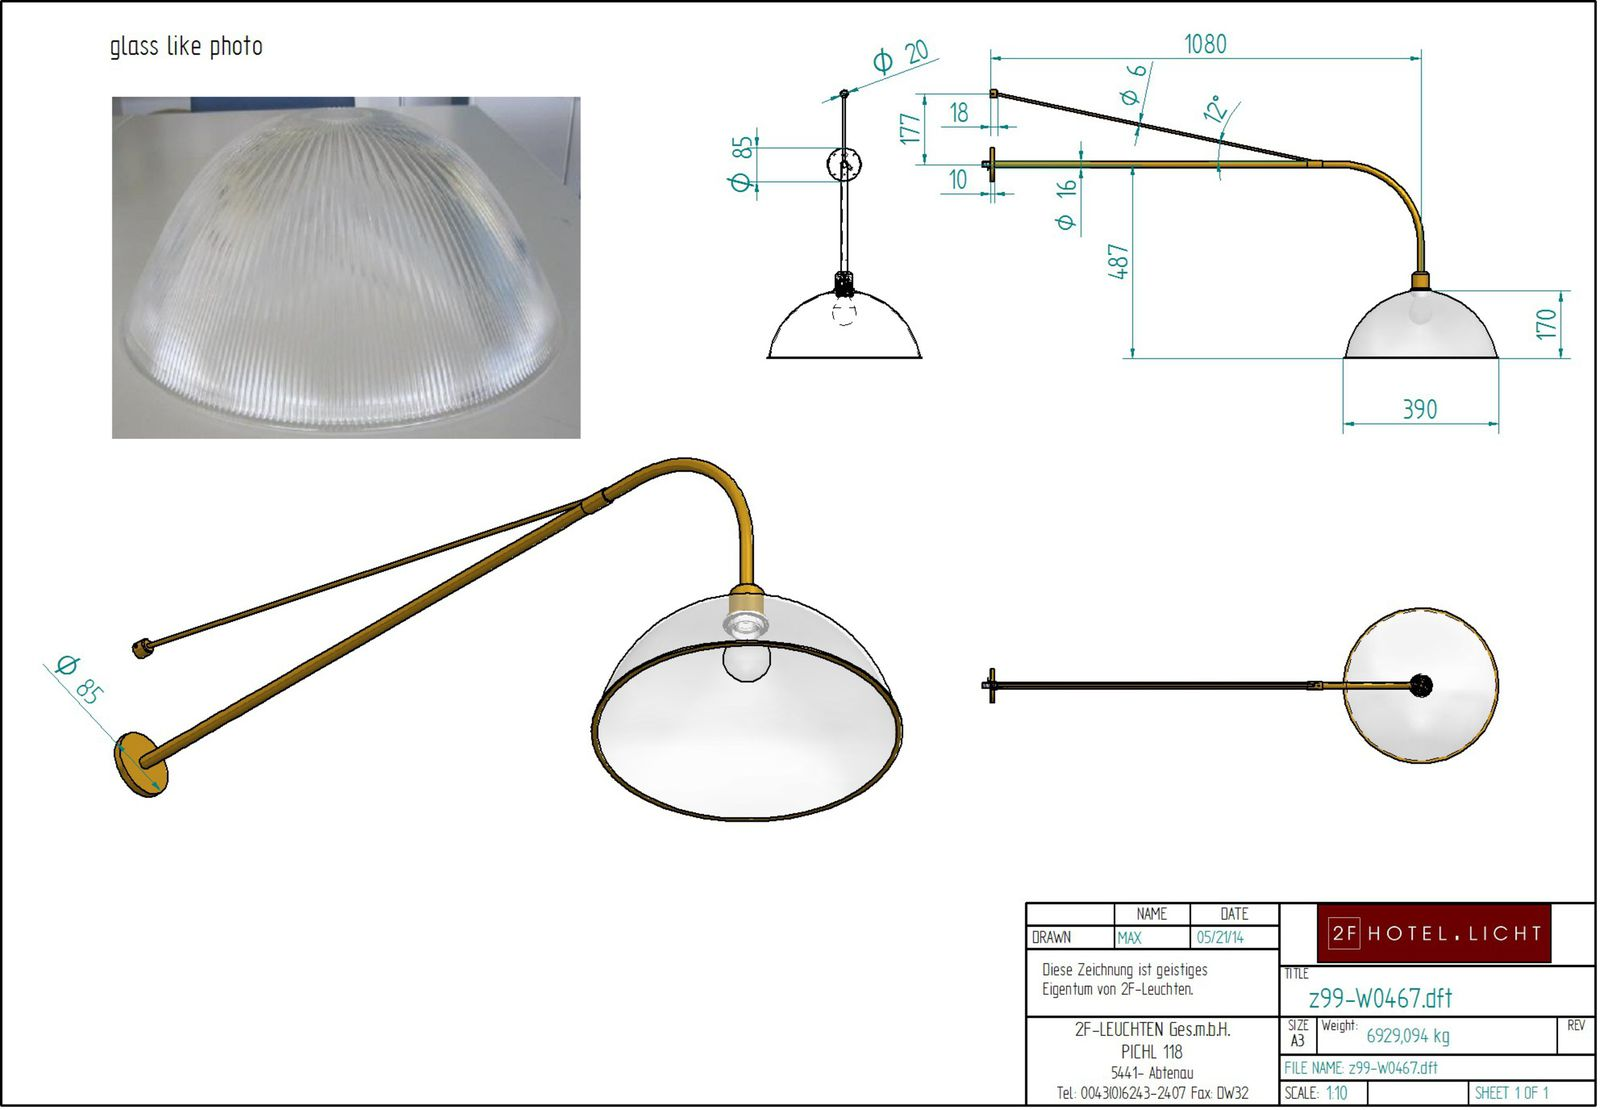 wall lamp, glass with rills, L:1275mm, wide:390mm, h:684mm, surface: dark bronze MBD, 1xE27, 60W